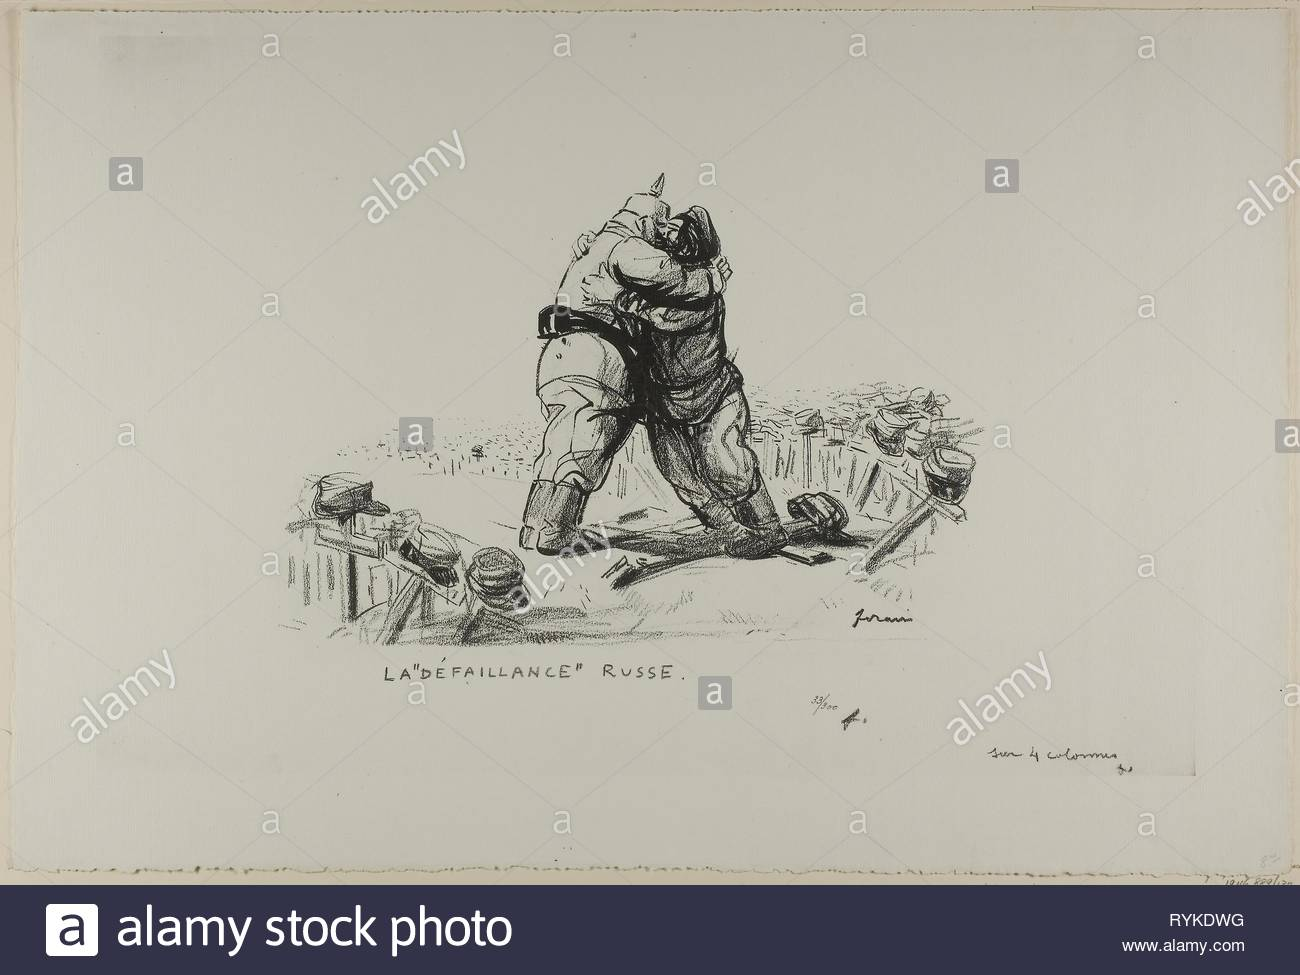 No. 137: La 'défaillance' russe. Jean Louis Forain; French, 1852-1931. Date: 1918. Dimensions: 225 × 300 mm (image); 385 × 570 mm (sheet). Line block taken from a drawing on ivory wove paper. Origin: France. Museum: The Chicago Art Institute, Chicago, USA. - Stock Image